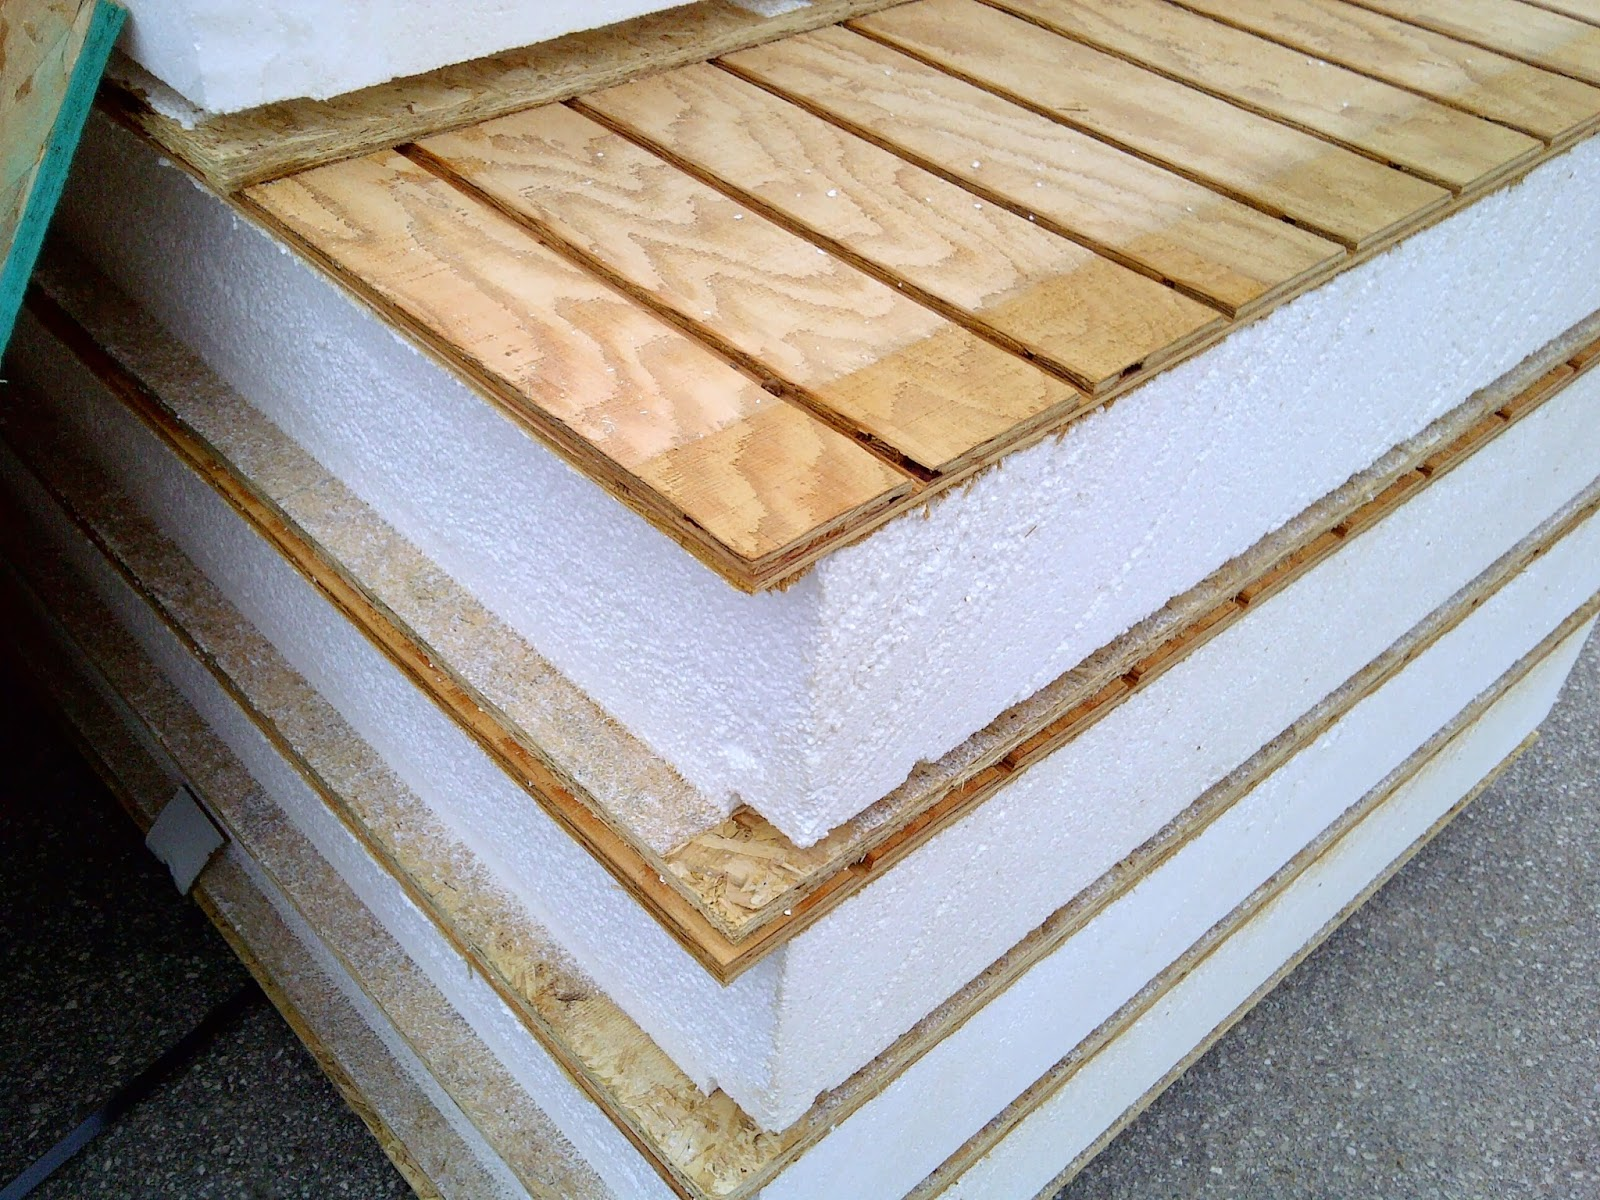 Wall Structural Insulated Panels : Structural insulated panels save money on energy penny